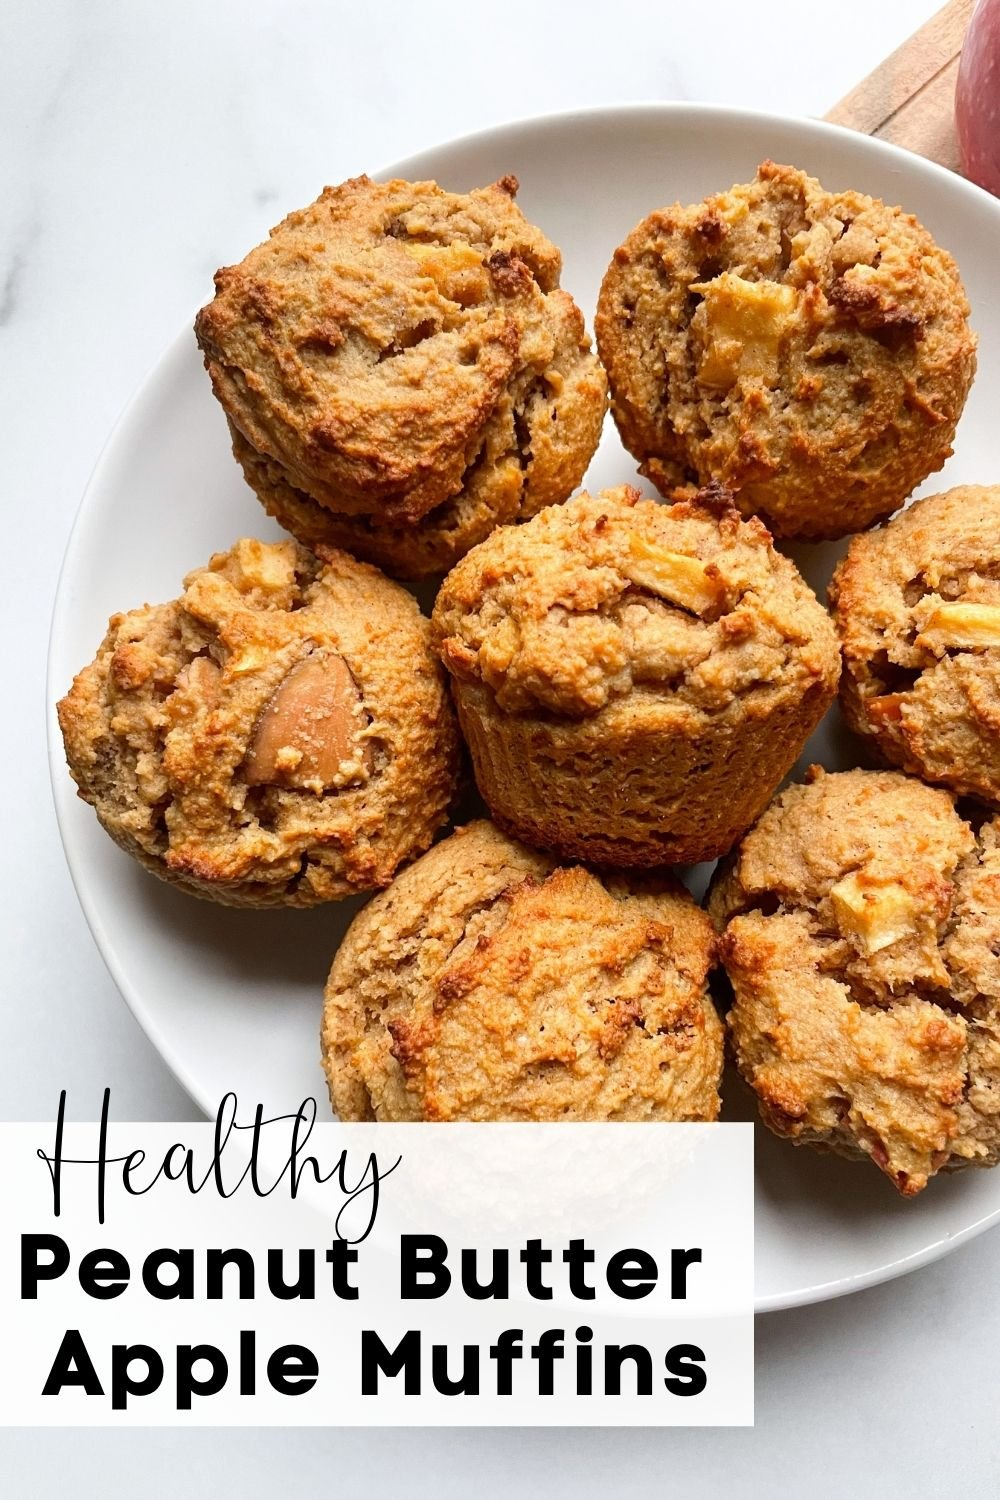 Healthy Peanut Butter Apple Muffins on plate with text overlay